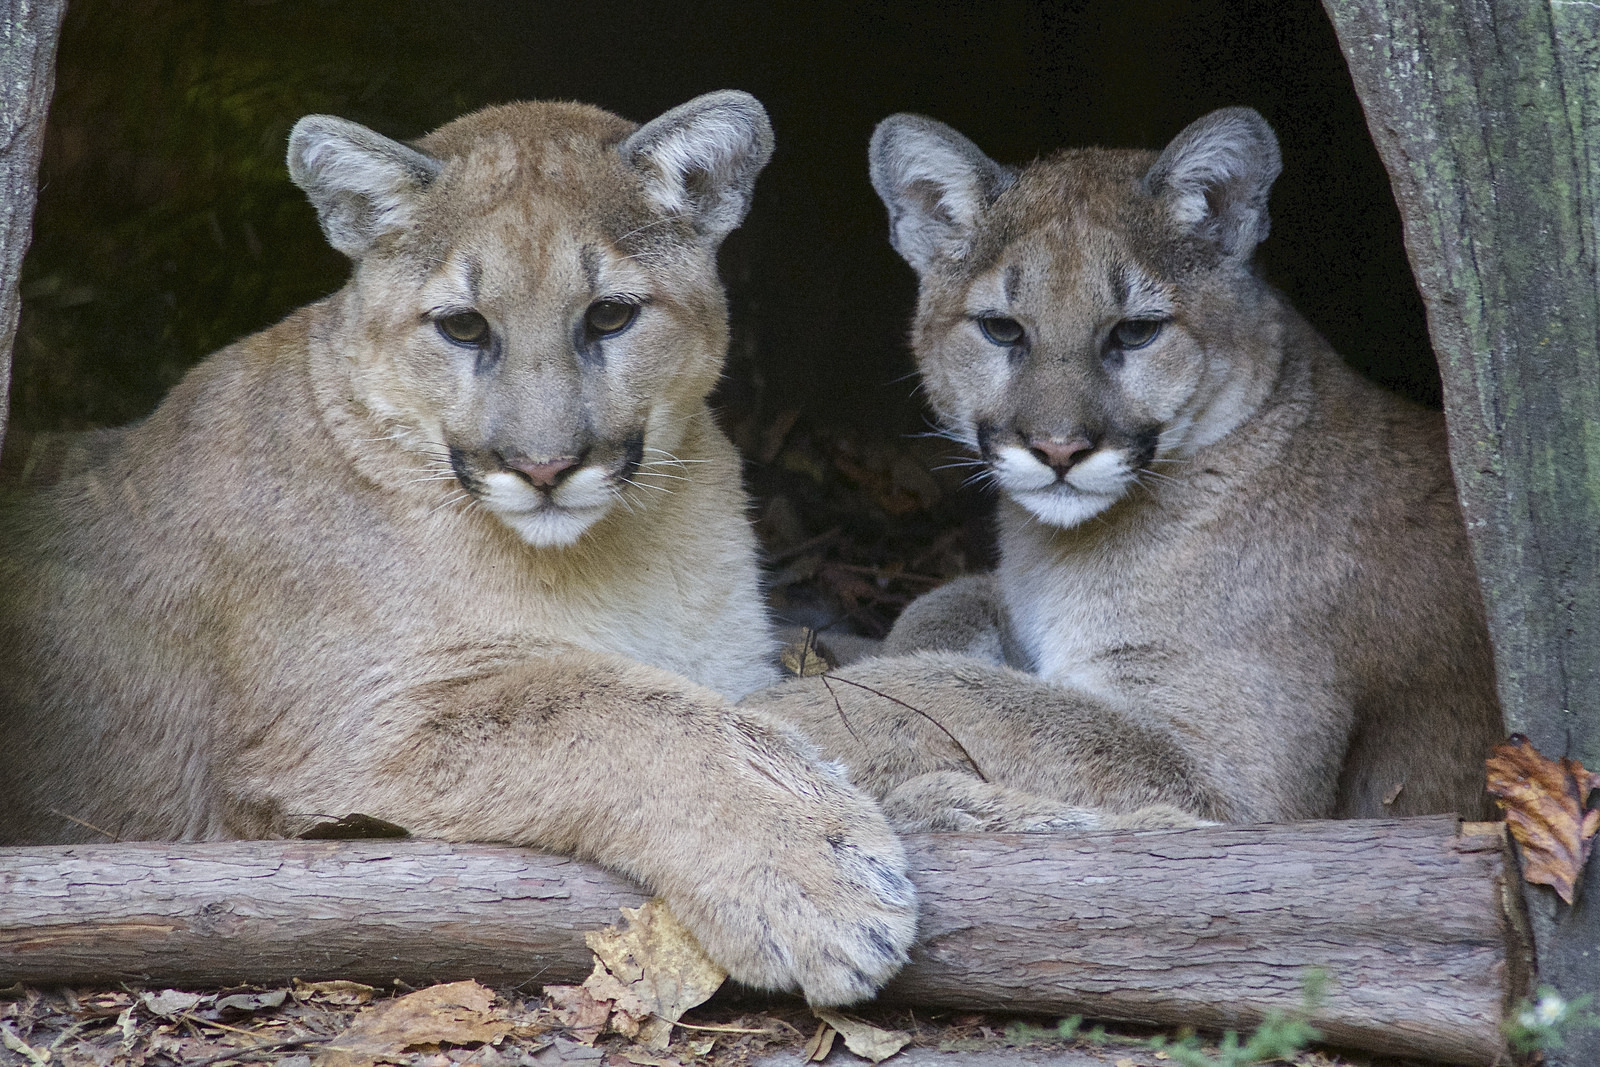 Orphaned cougars at the North Carolina Zoo celebrate first birthday